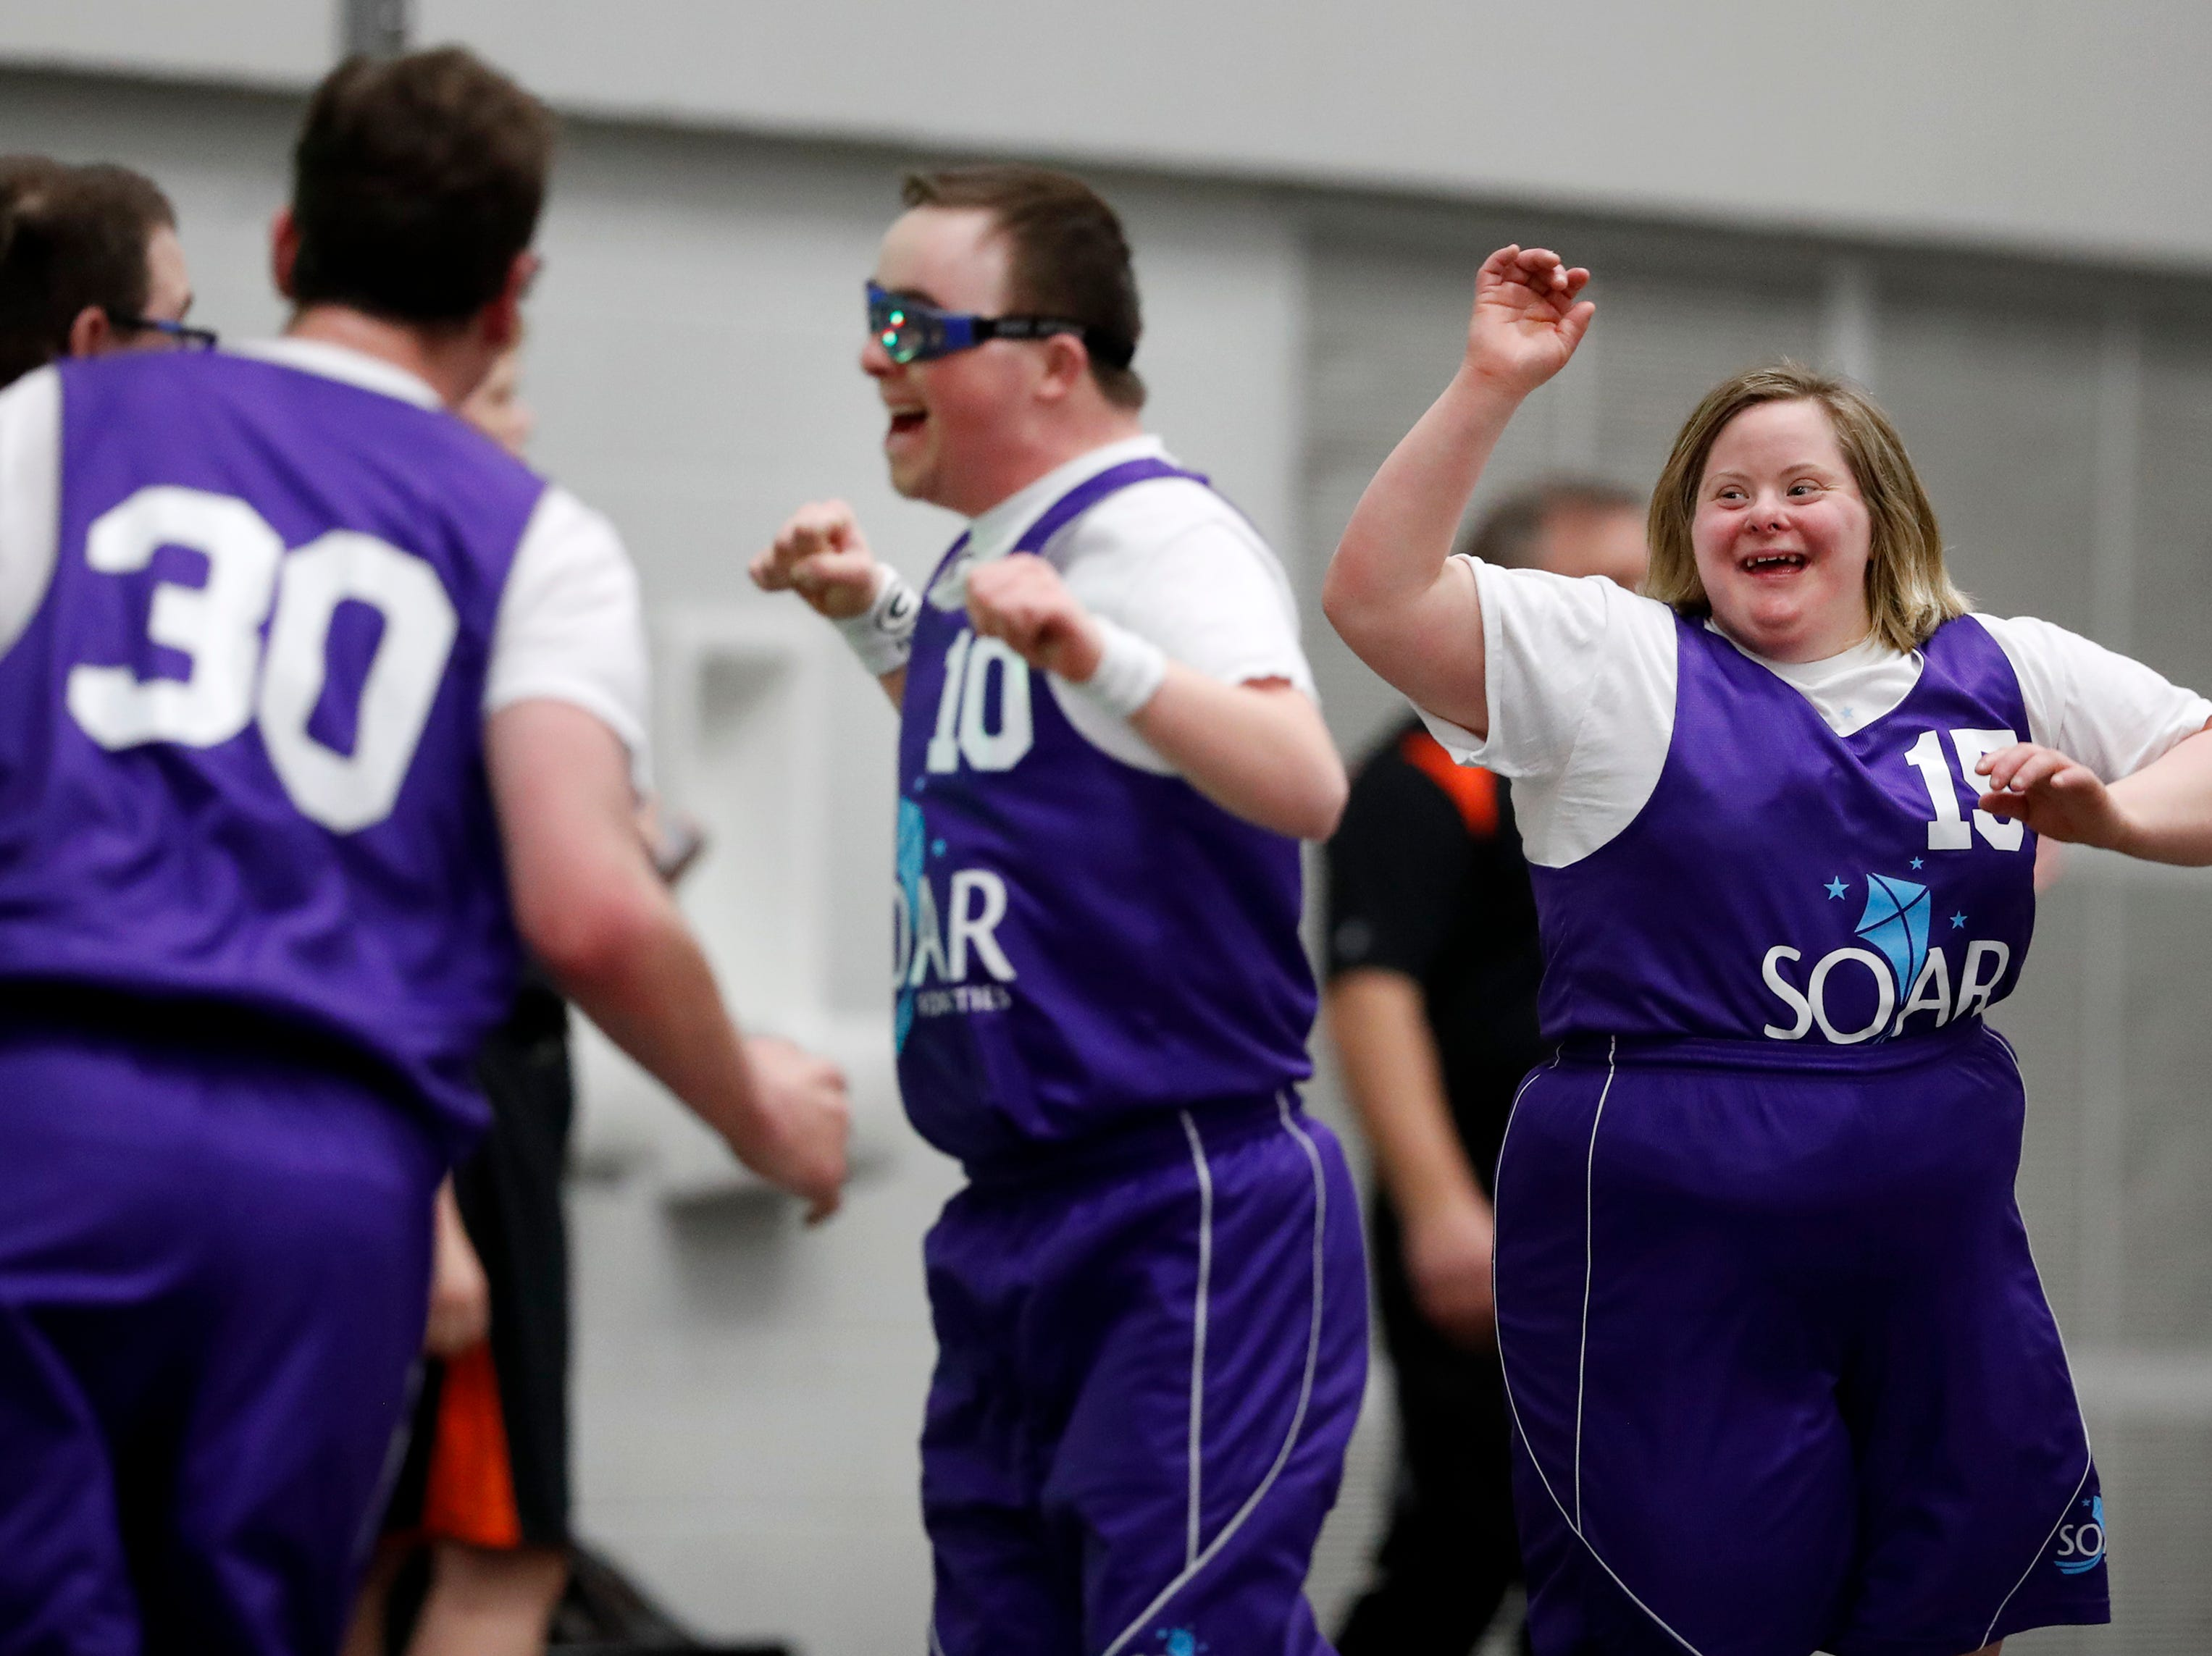 The SOAR Hawks' Kendra Catenacci celebrates their 25-24 win over the Silver Lake Blazers during the 2019 Special Olympics State Indoor Sports Tournament Saturday, April 6, 2019, at the Kolf Sports Center in Oshkosh, Wis. Danny Damiani/USA TODAY NETWORK-Wisconsin